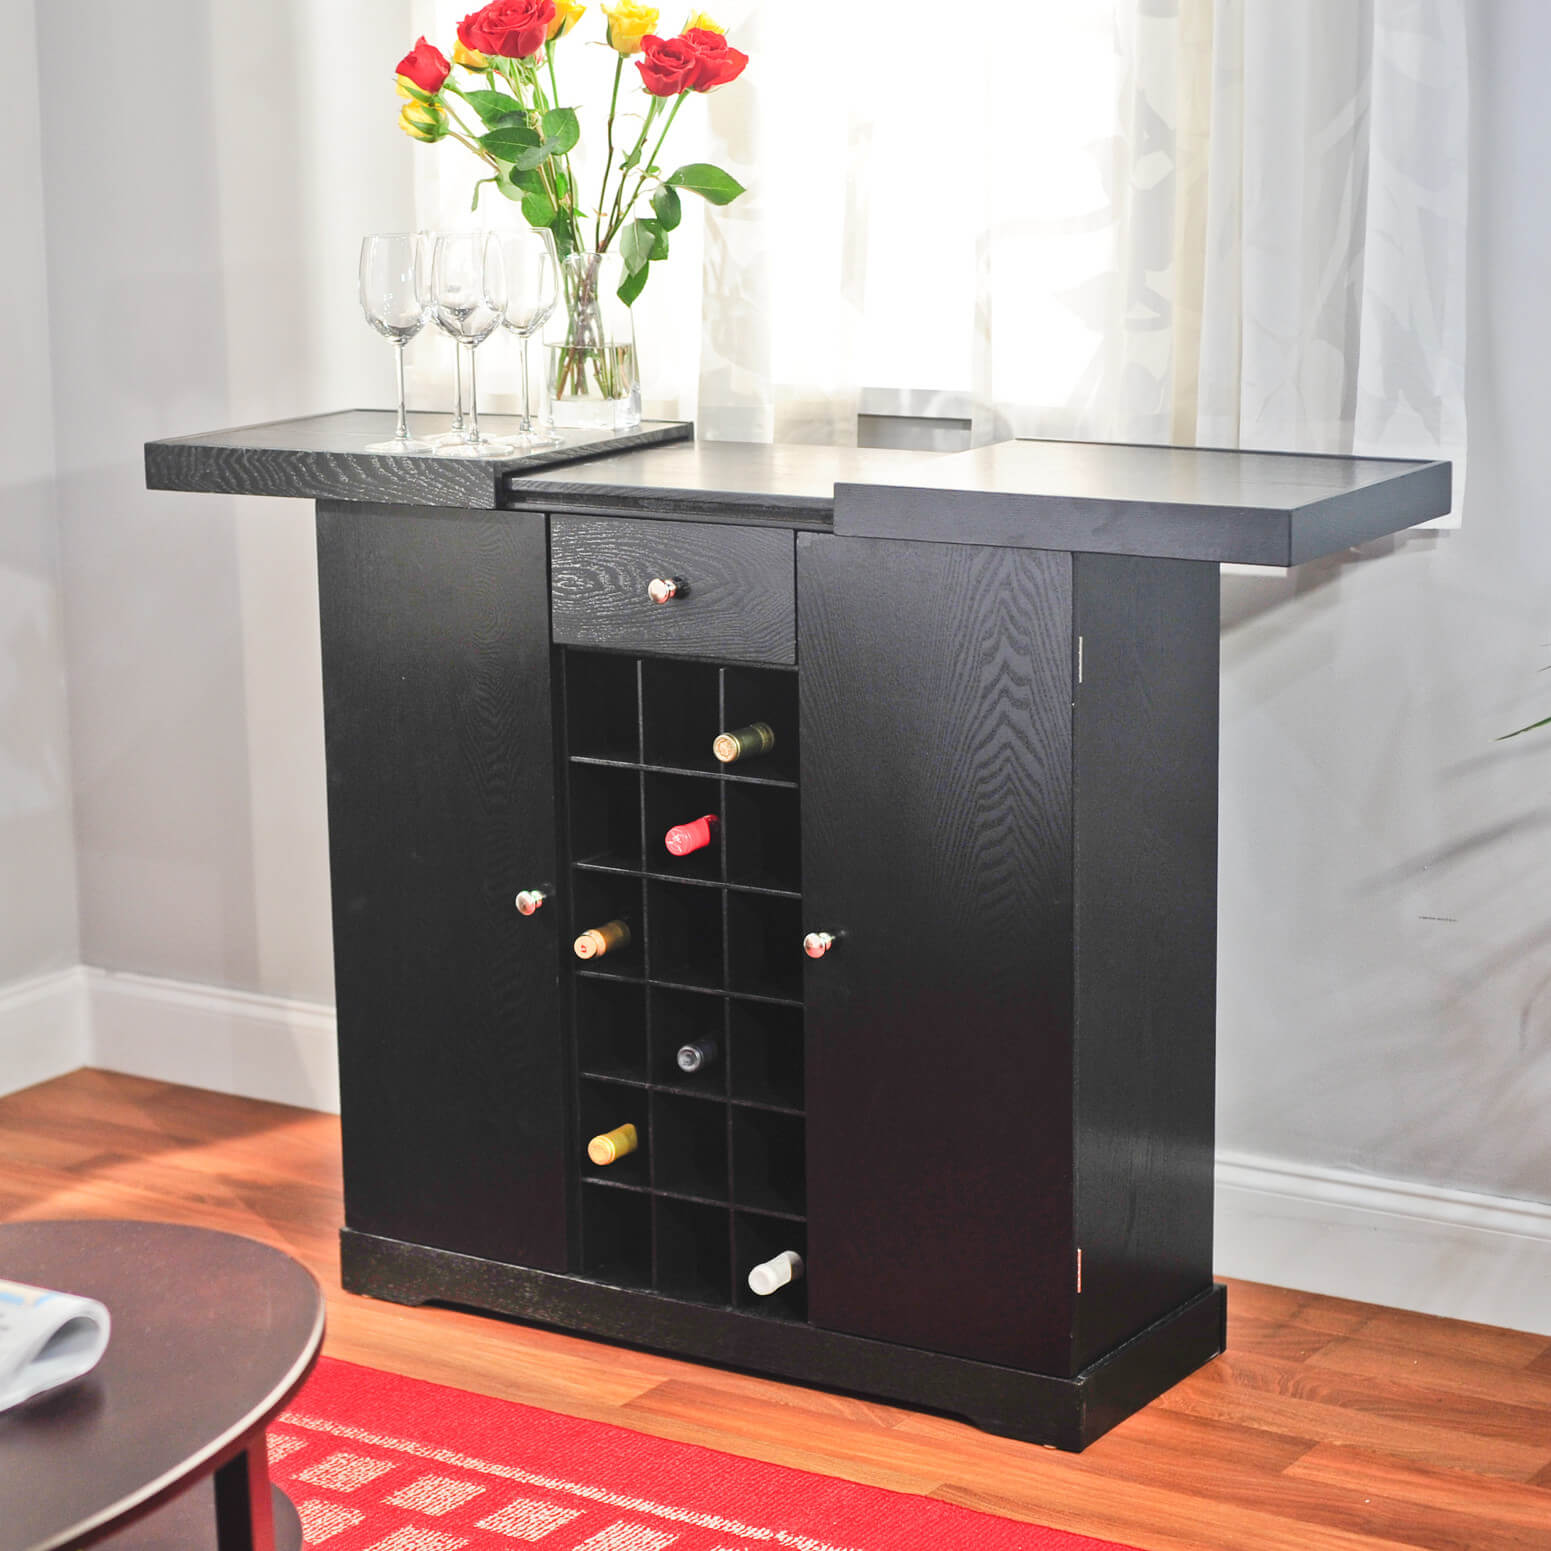 Good This Is A Classic Cabinet Instead Of A Bar. We Included It In This Gallery